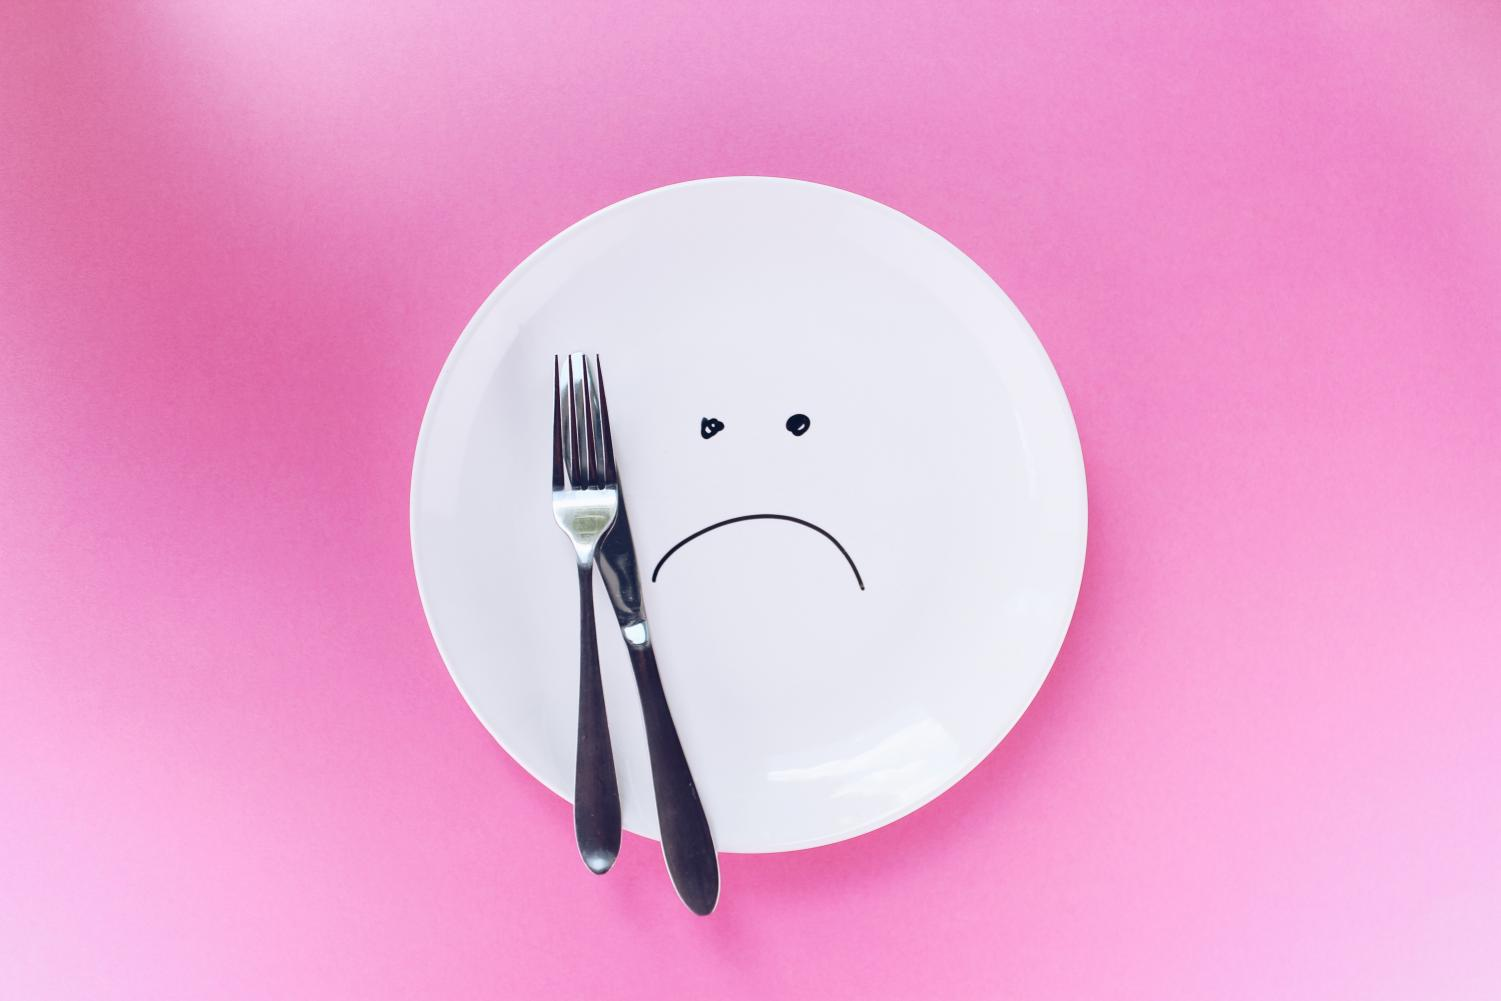 People who practice intuitive eating often promote the ideal that one can be healthy no matter what size.